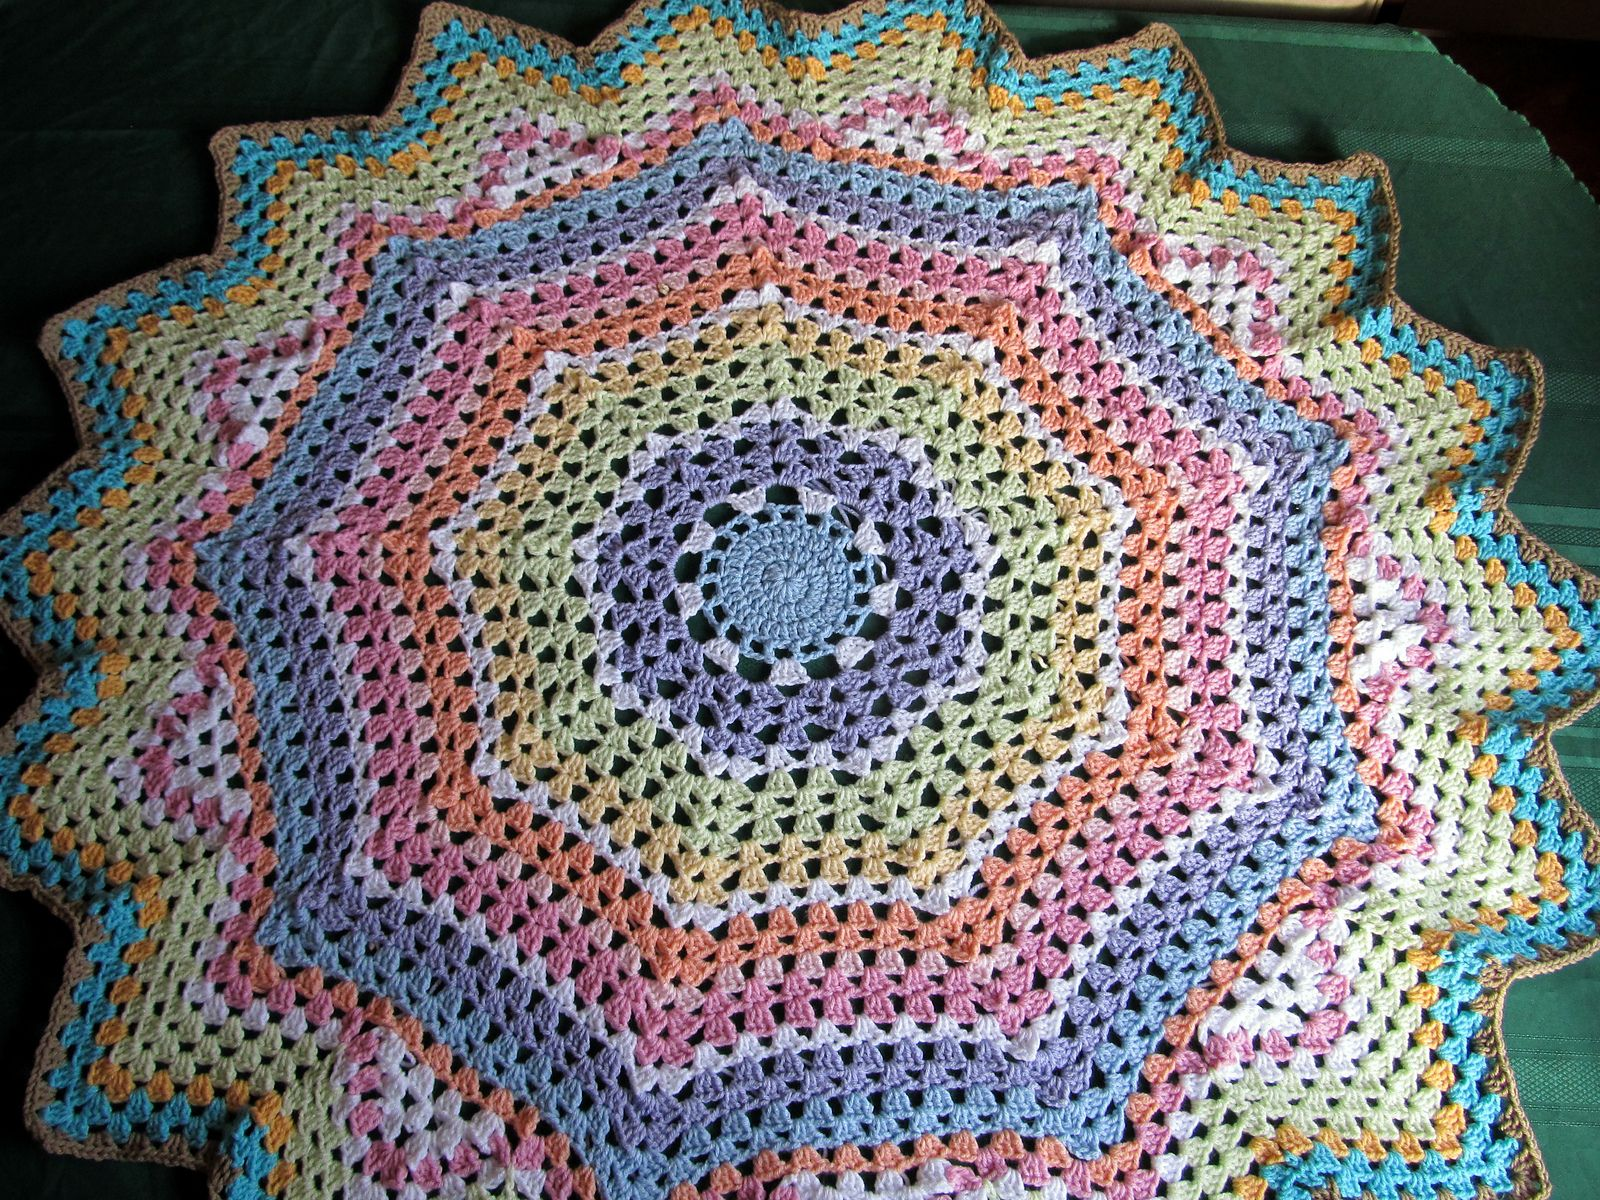 Ravelry stir up a smile round ripple 18 points by donna mason crochet round bankloansurffo Images